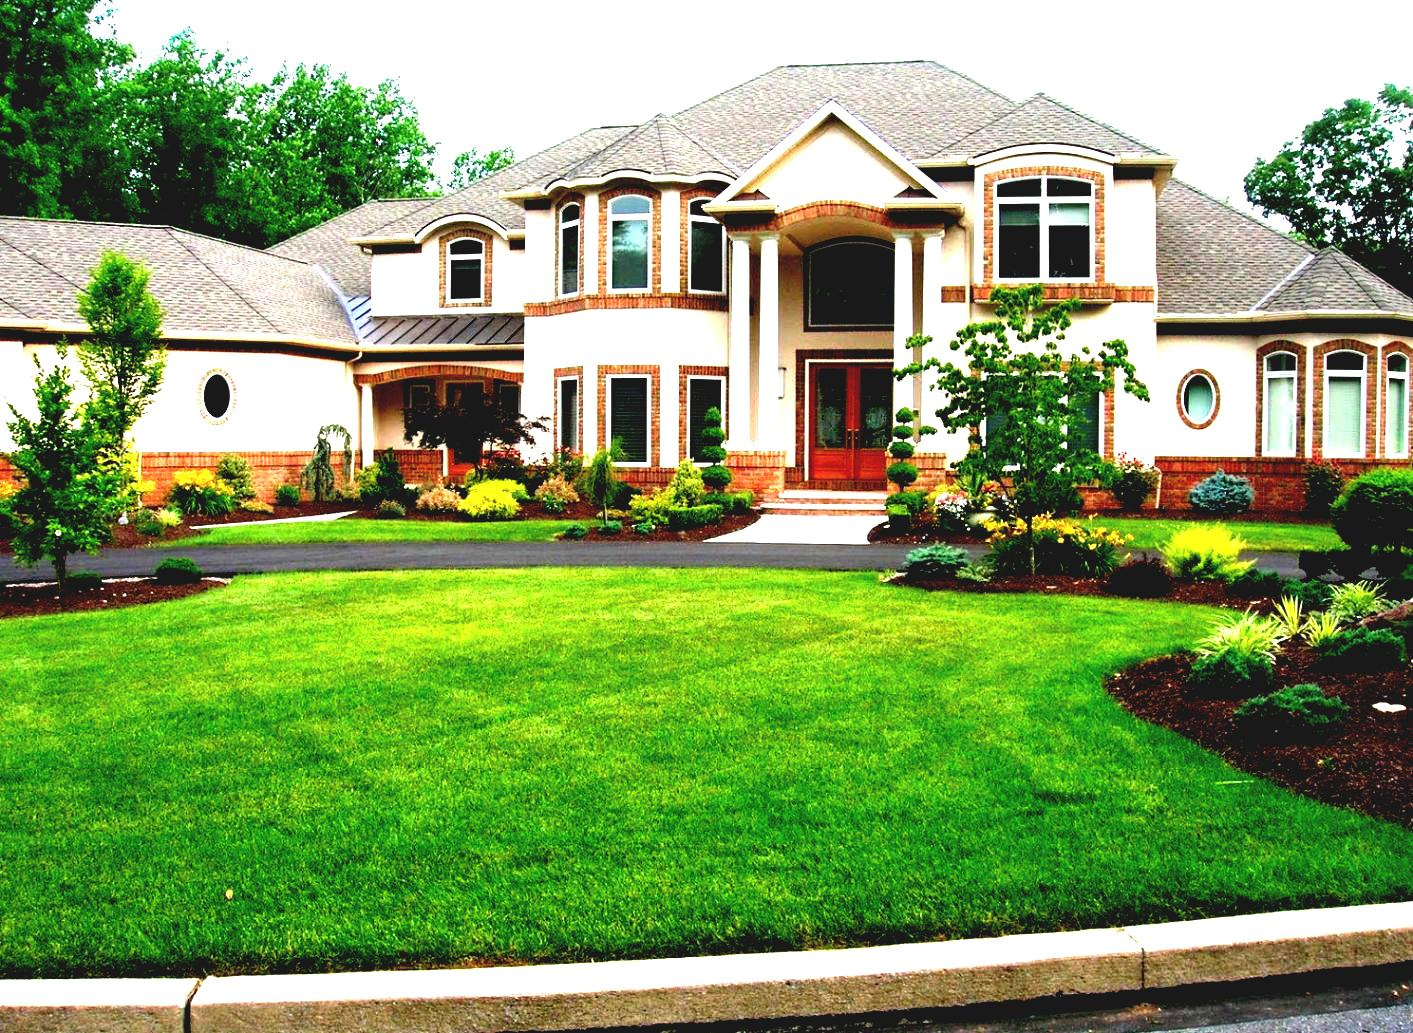 house-landscape-pinterest-landscaping-front-the-tips-to-compose-simple-ideas-of-home-outstanding-yard-on-a-budget-for-design-pic